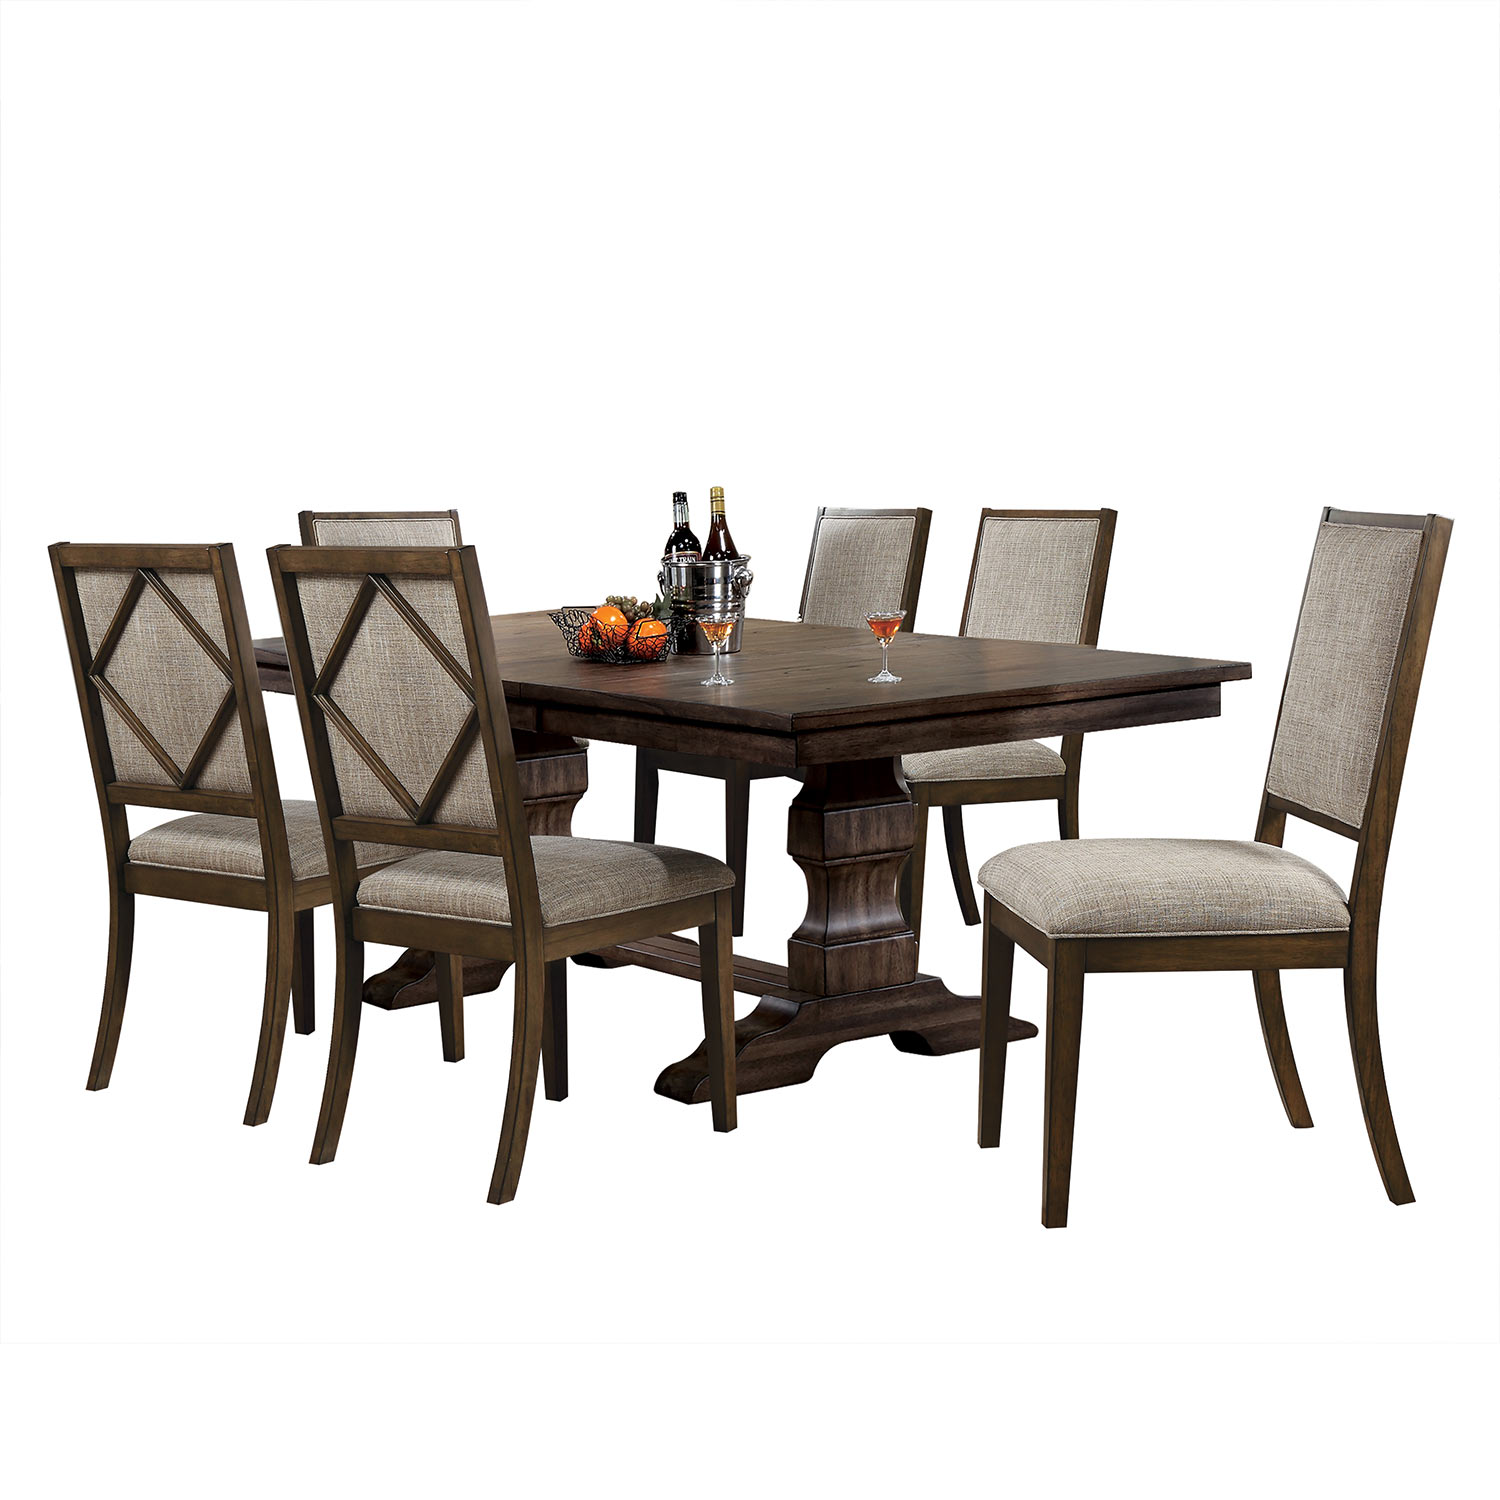 Acme Aurodoti Dining Set with Double Pedestal - Oak